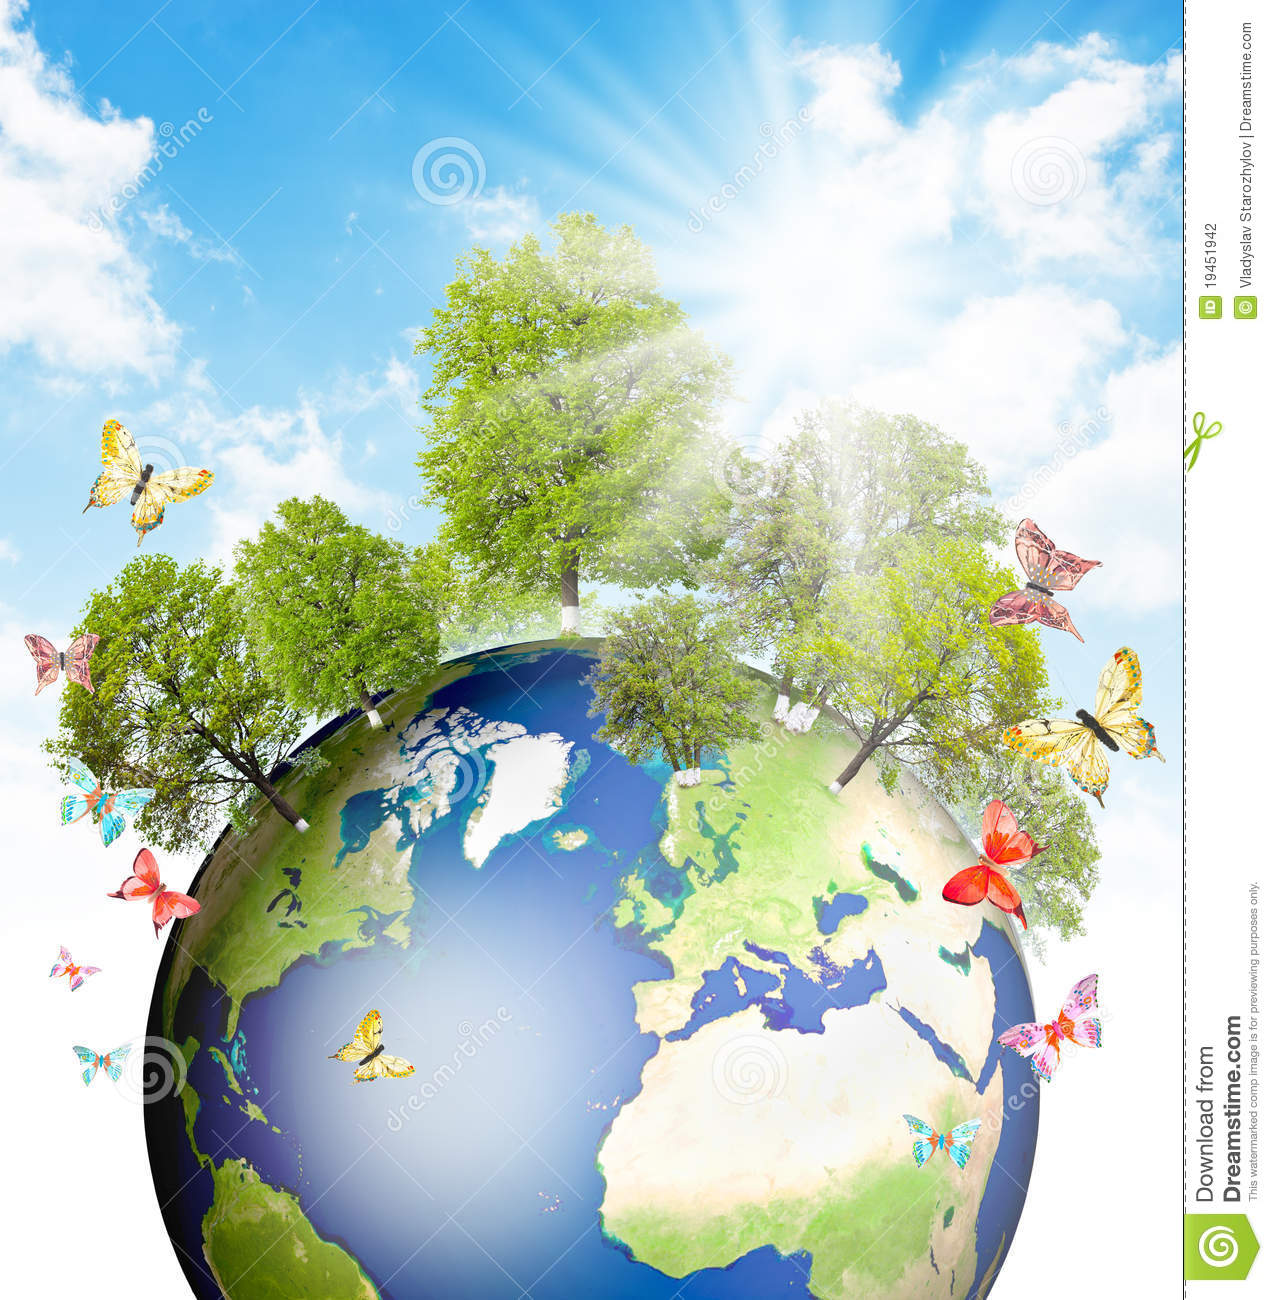 Green Earth. Stock Photography | CartoonDealer.com #19451942